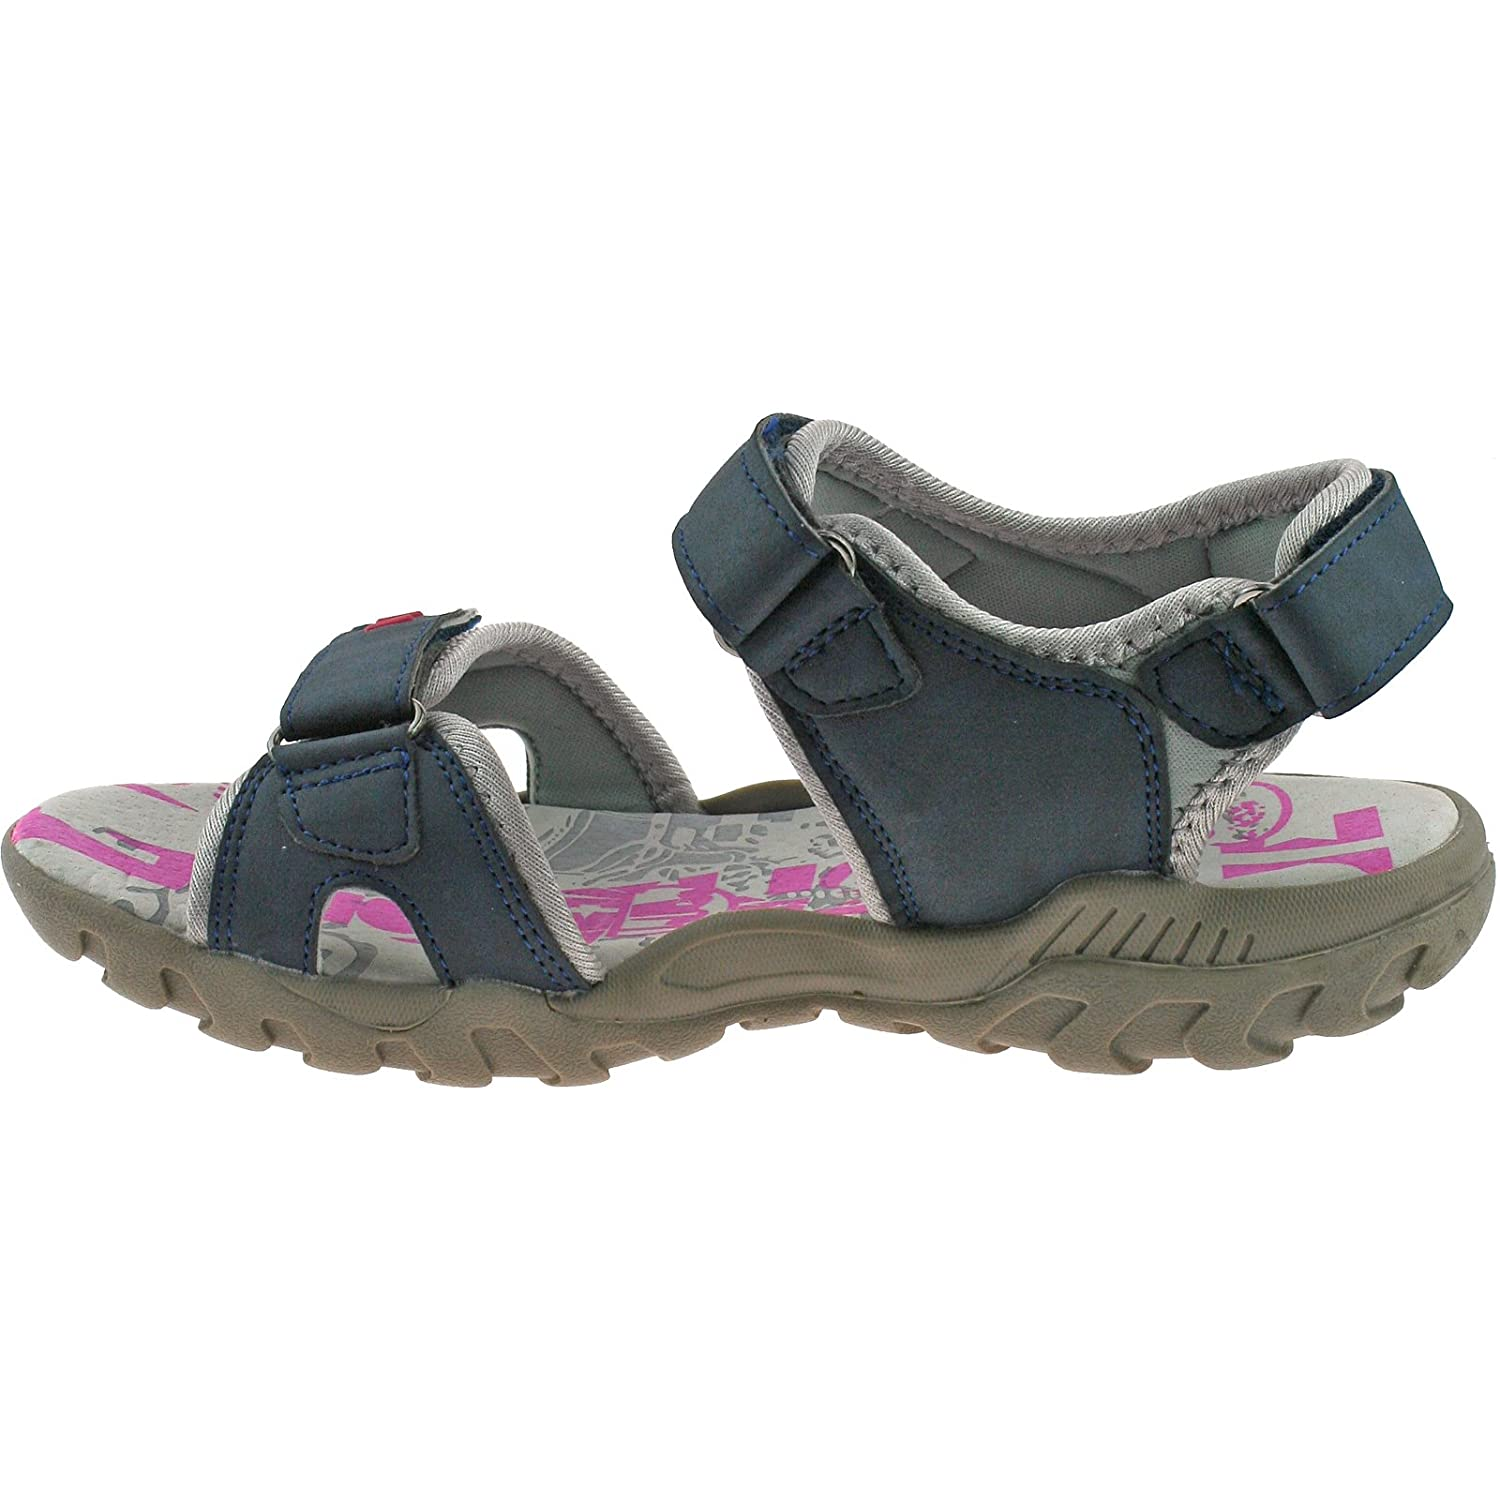 PDQ Womens Ladies Walking Sandals Navy Blue Adventure Touch Fastening   Amazon.co.uk  Shoes   Bags e37f20fb8a